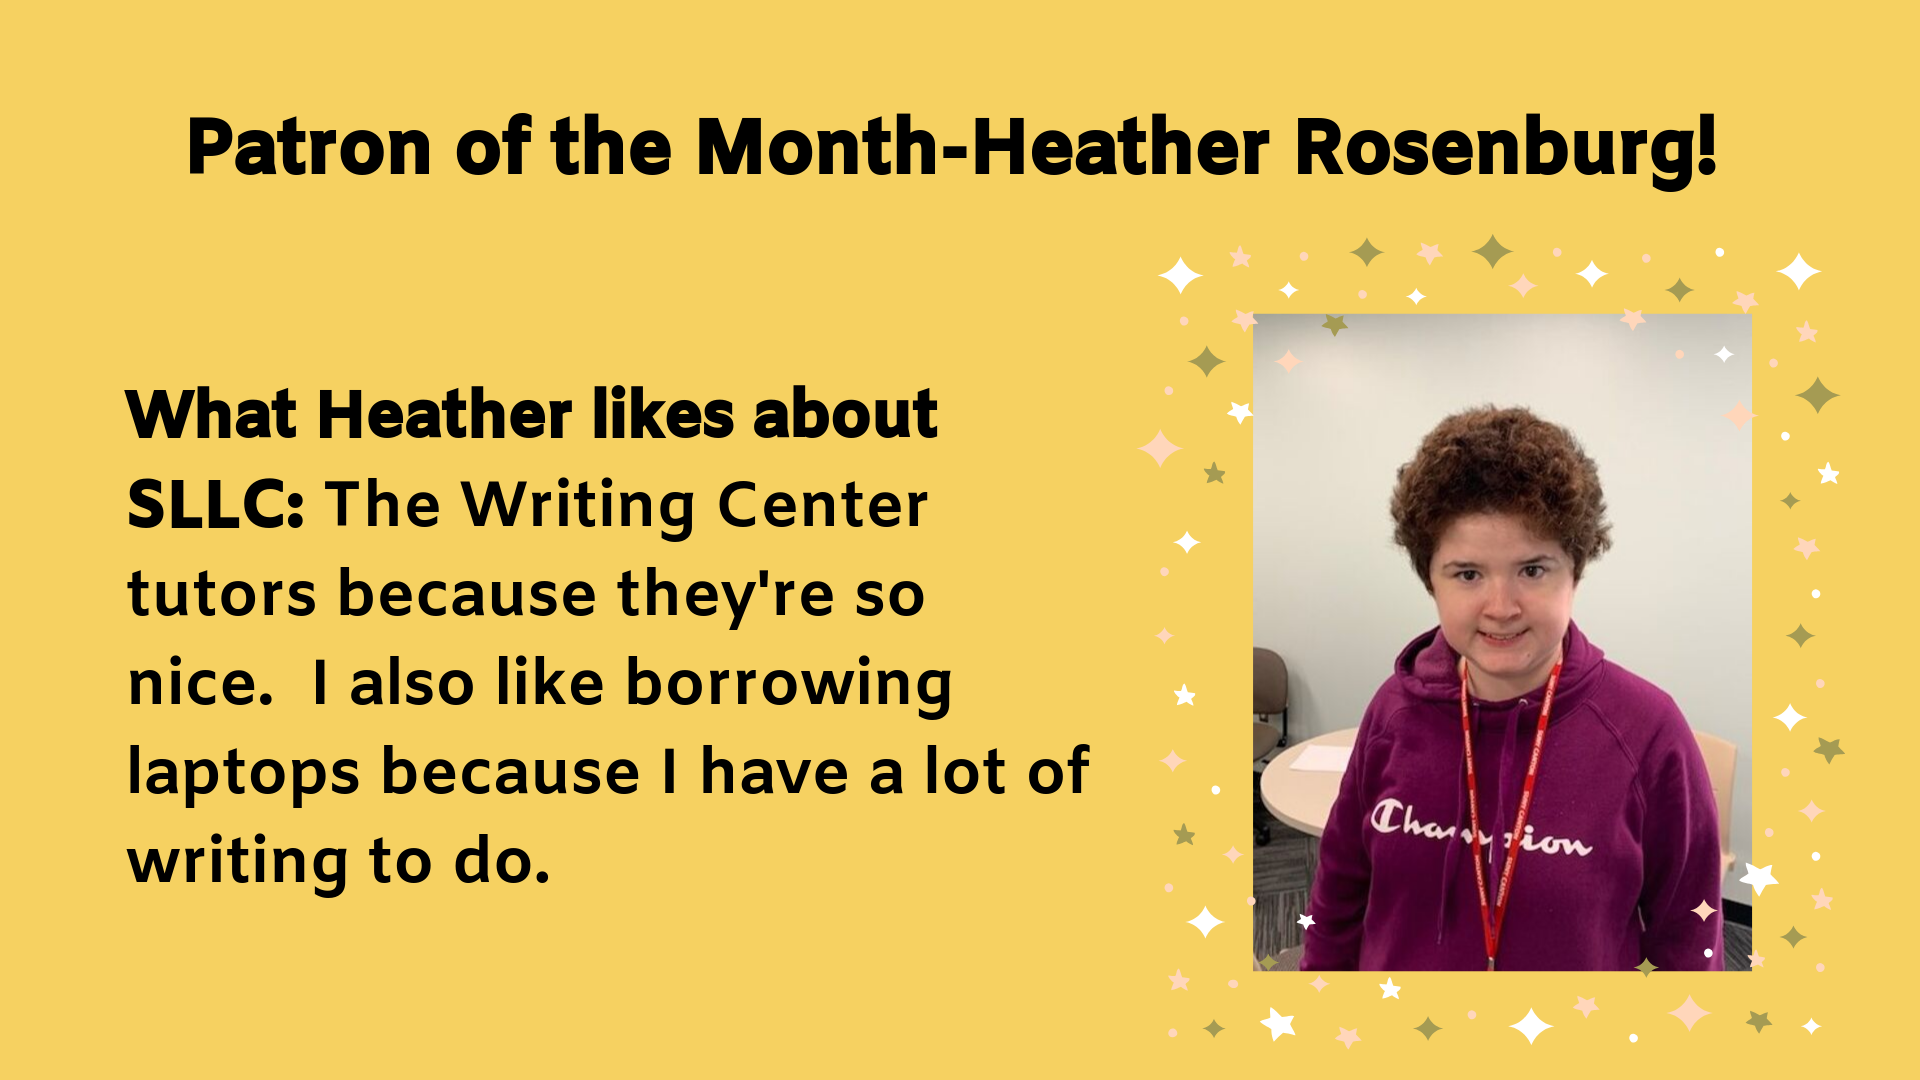 Patron of the Month-Heather Rosenburg! What Heather likes about SLLC: The Writing Center tutors because they're so nice.  I also like borrowing laptops because I have a lot of writing to do.